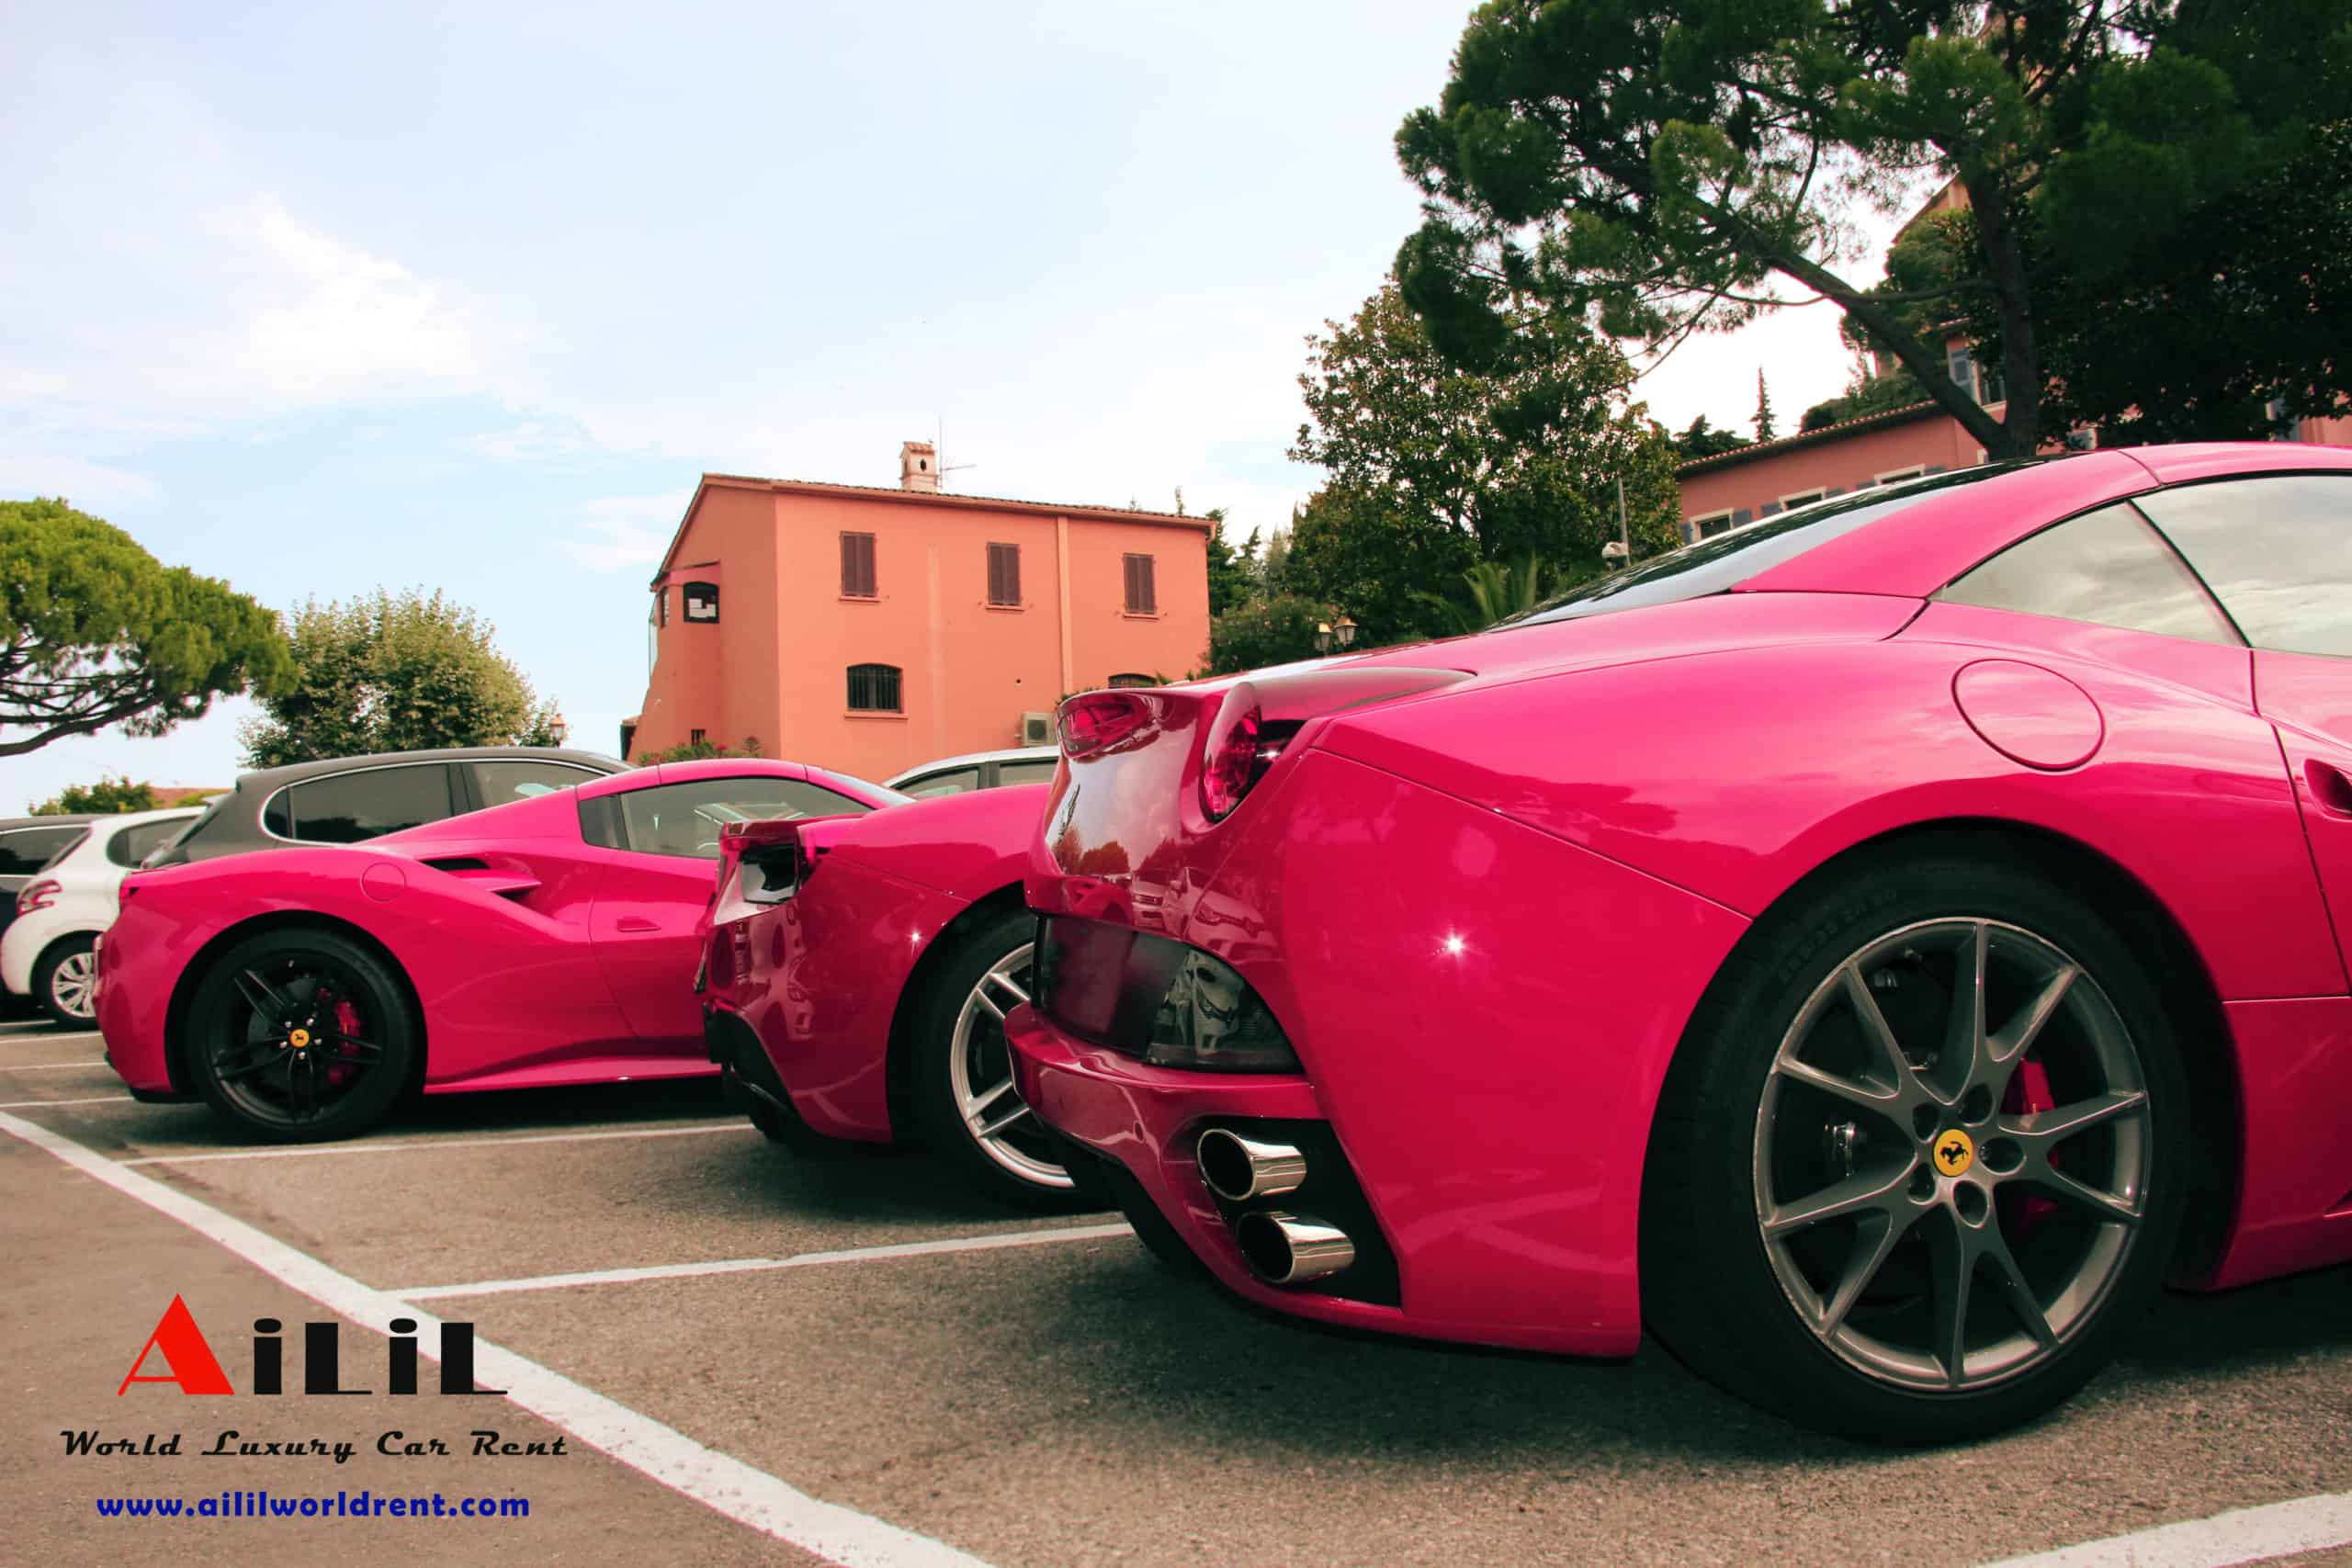 rent fast cars in europe, hire supercars in italy, book ferrai in france